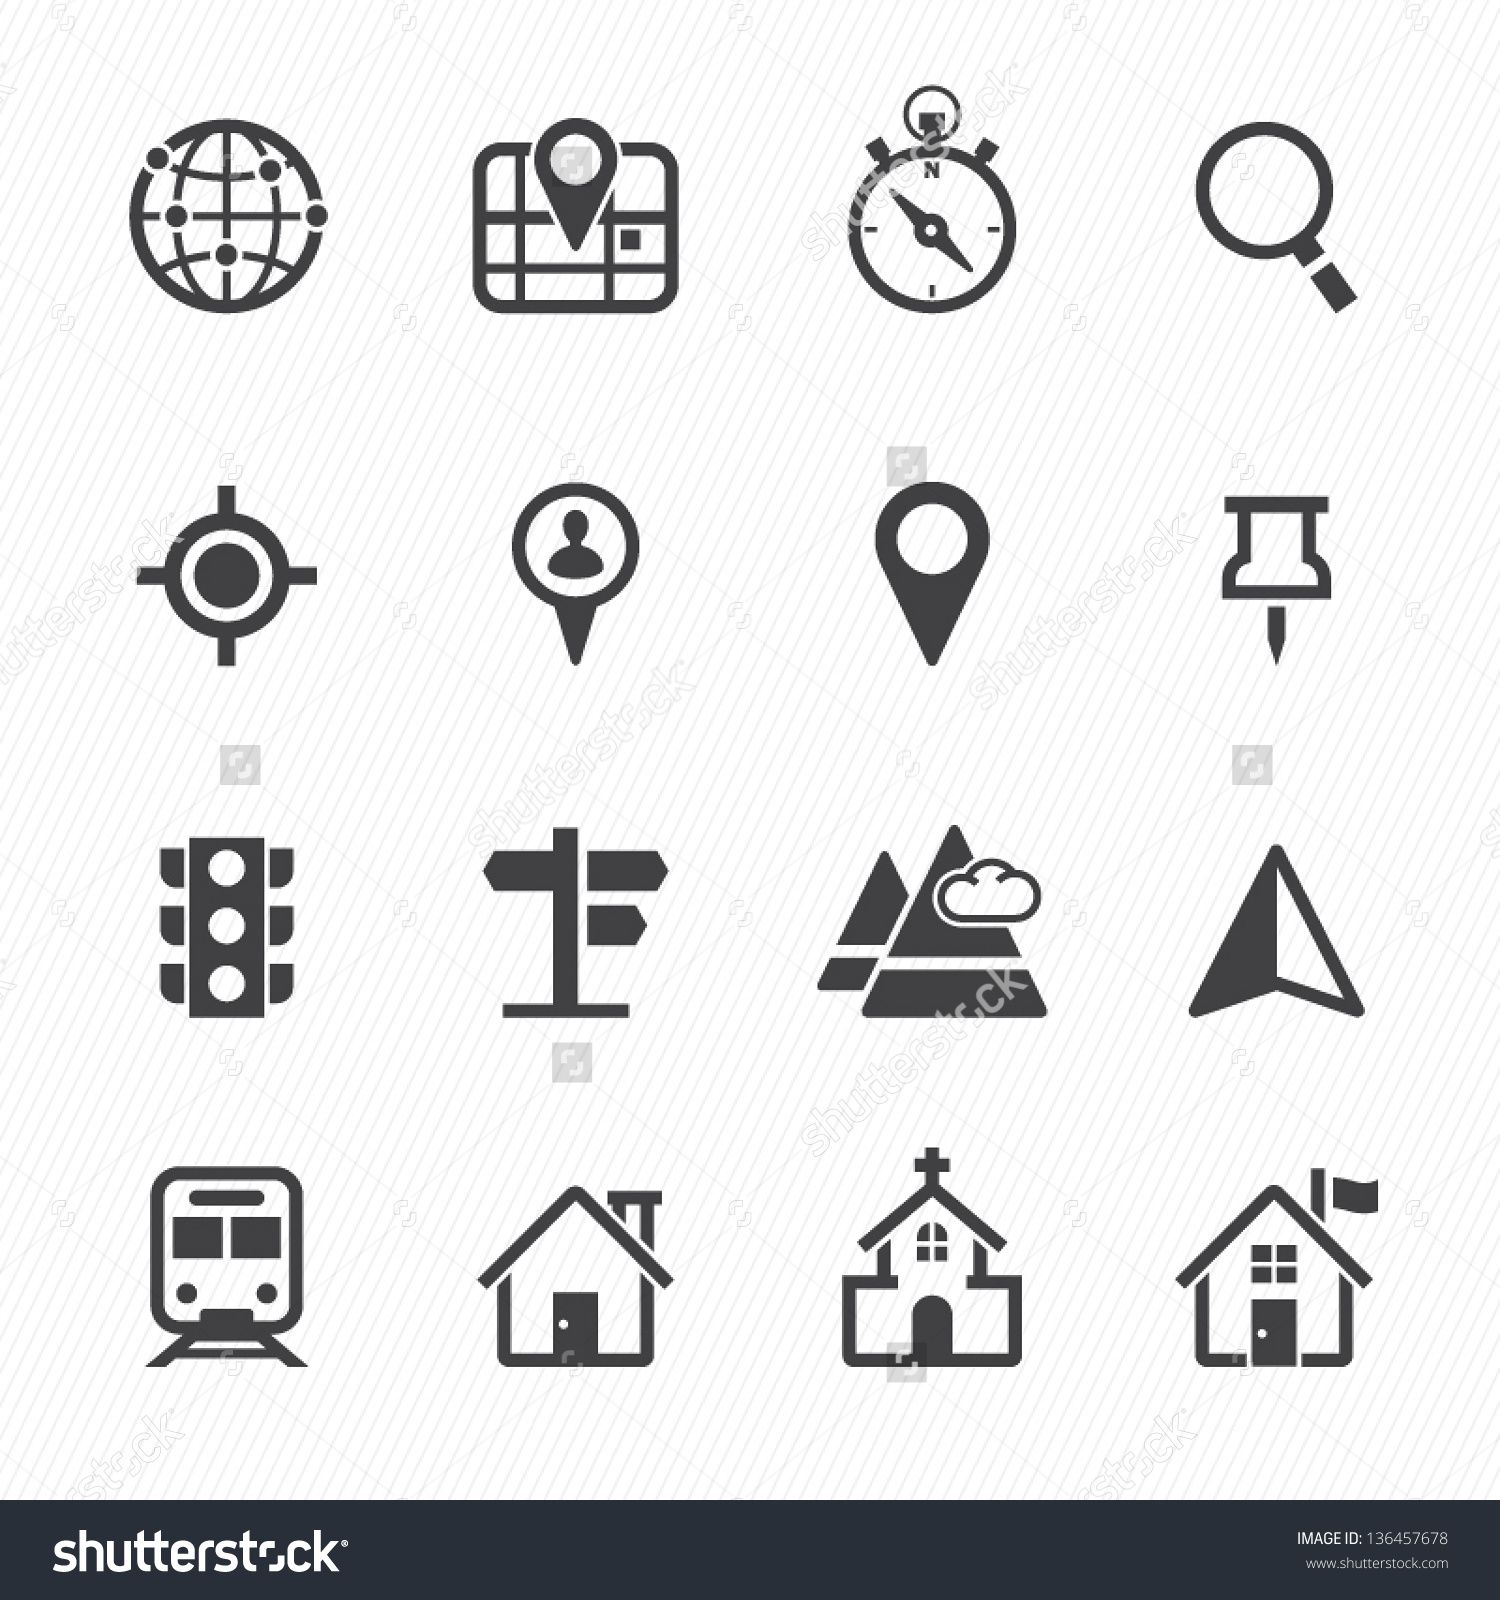 stock-vector-map-icons-and-location-icons-with-white-background ...